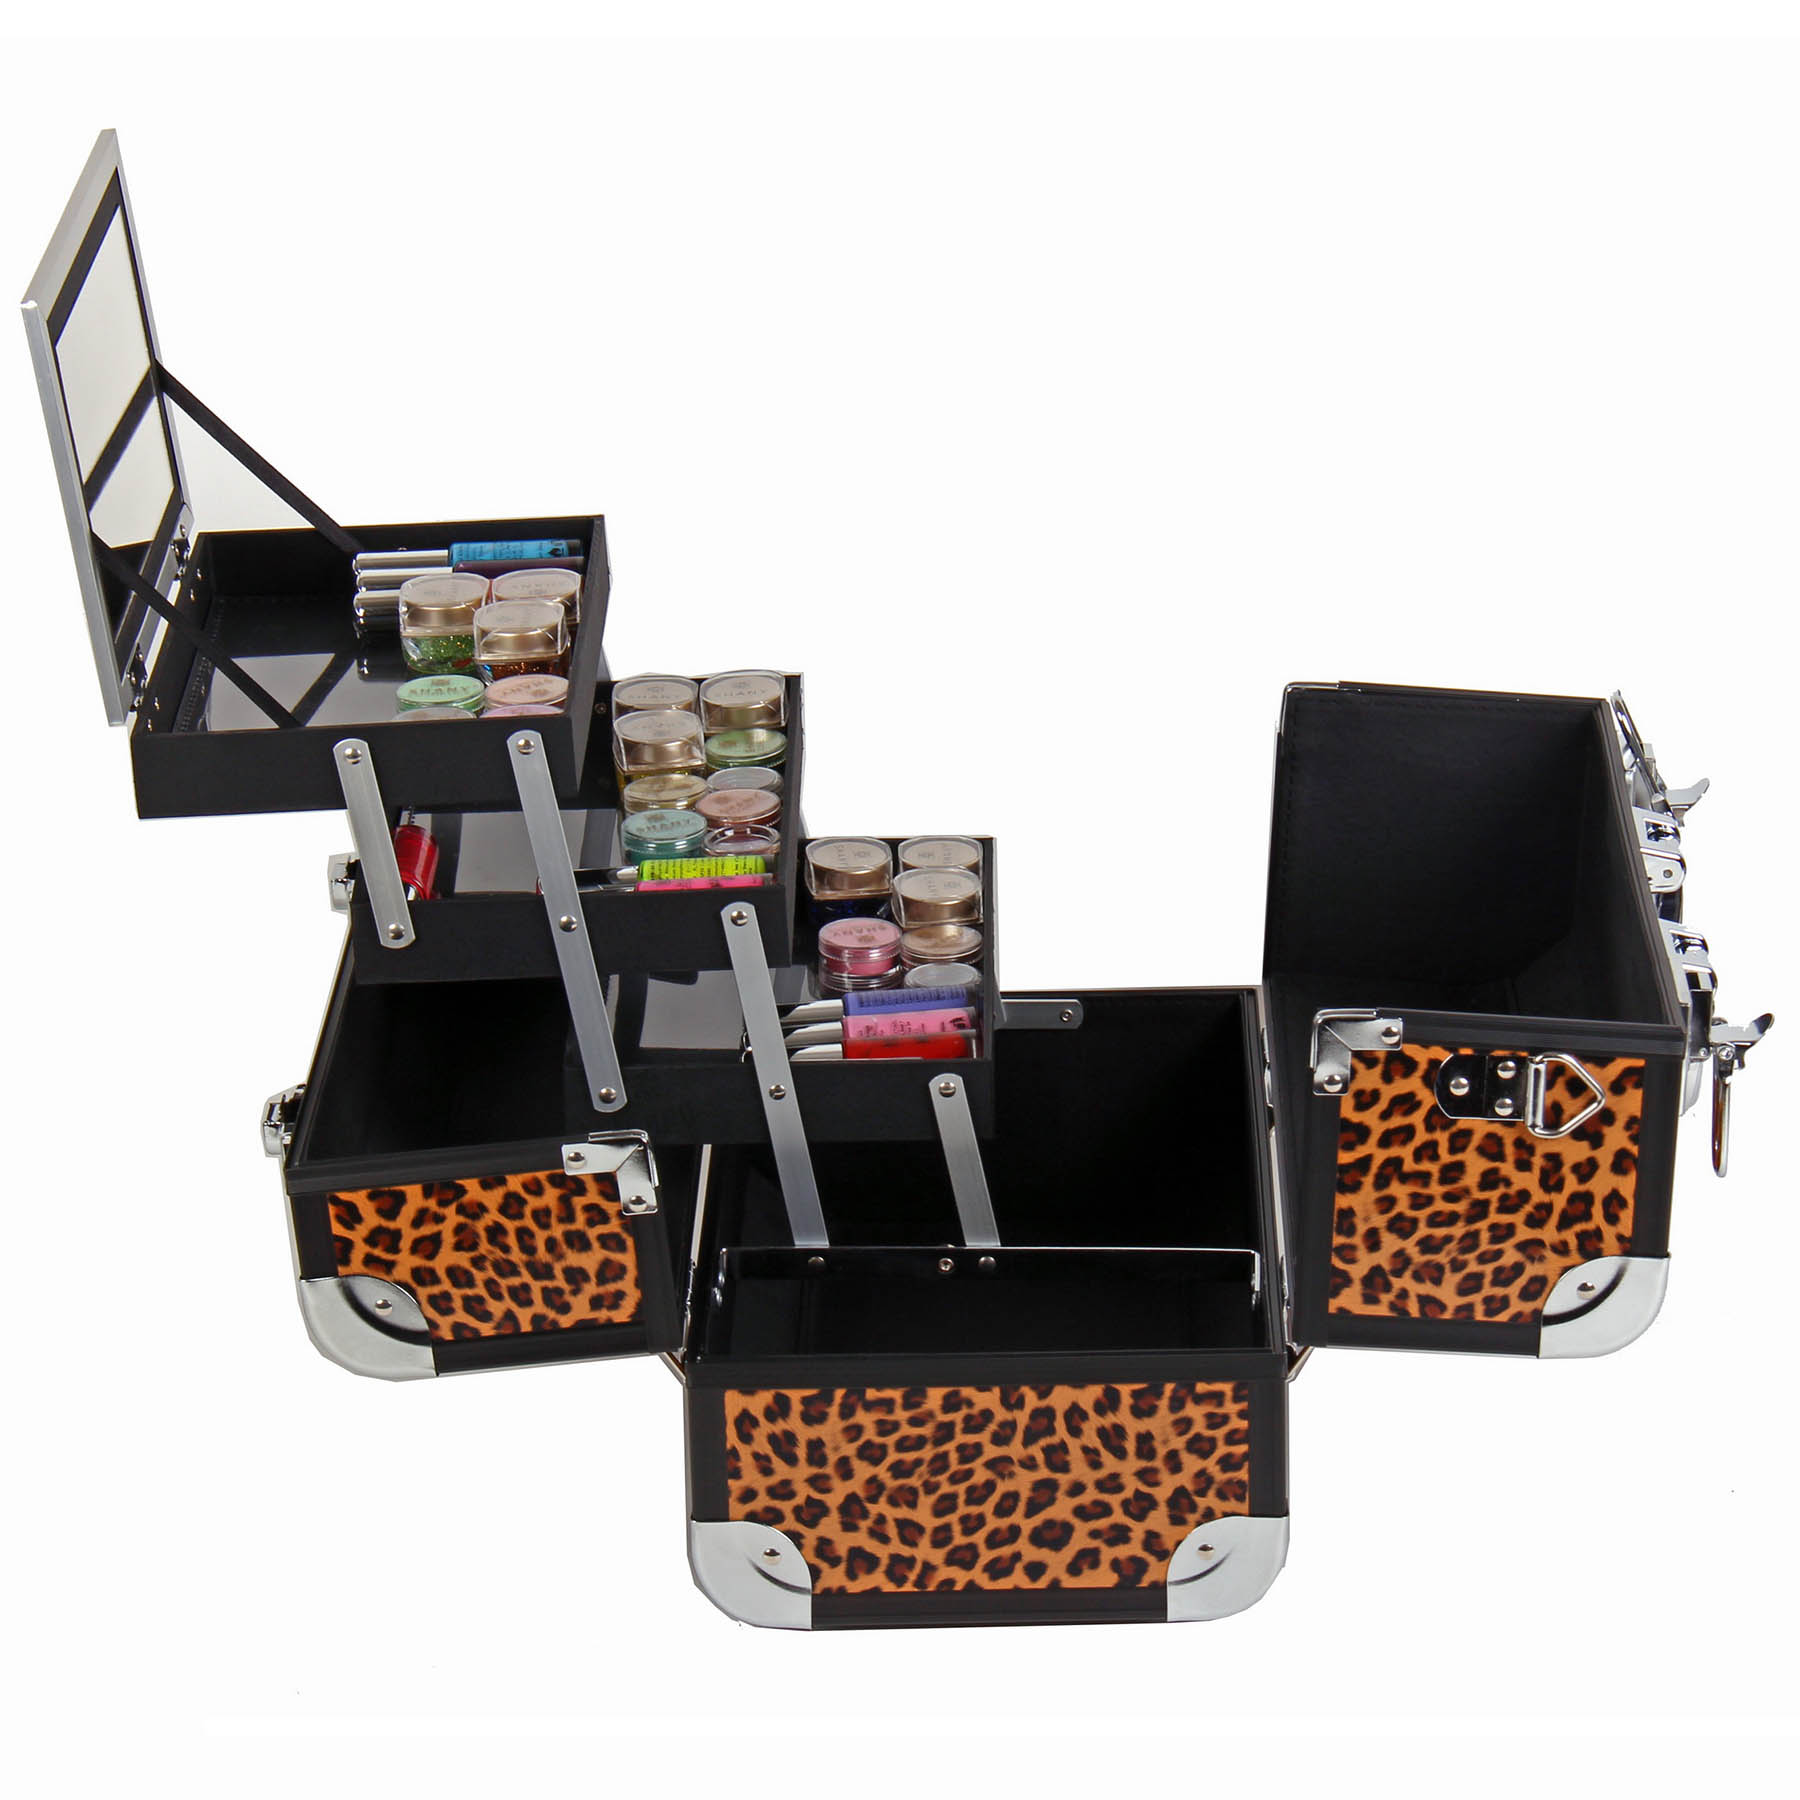 SHANY-Fantasy-Collection-Makeup-Artists-Cosmetics-Train-Case miniature 28